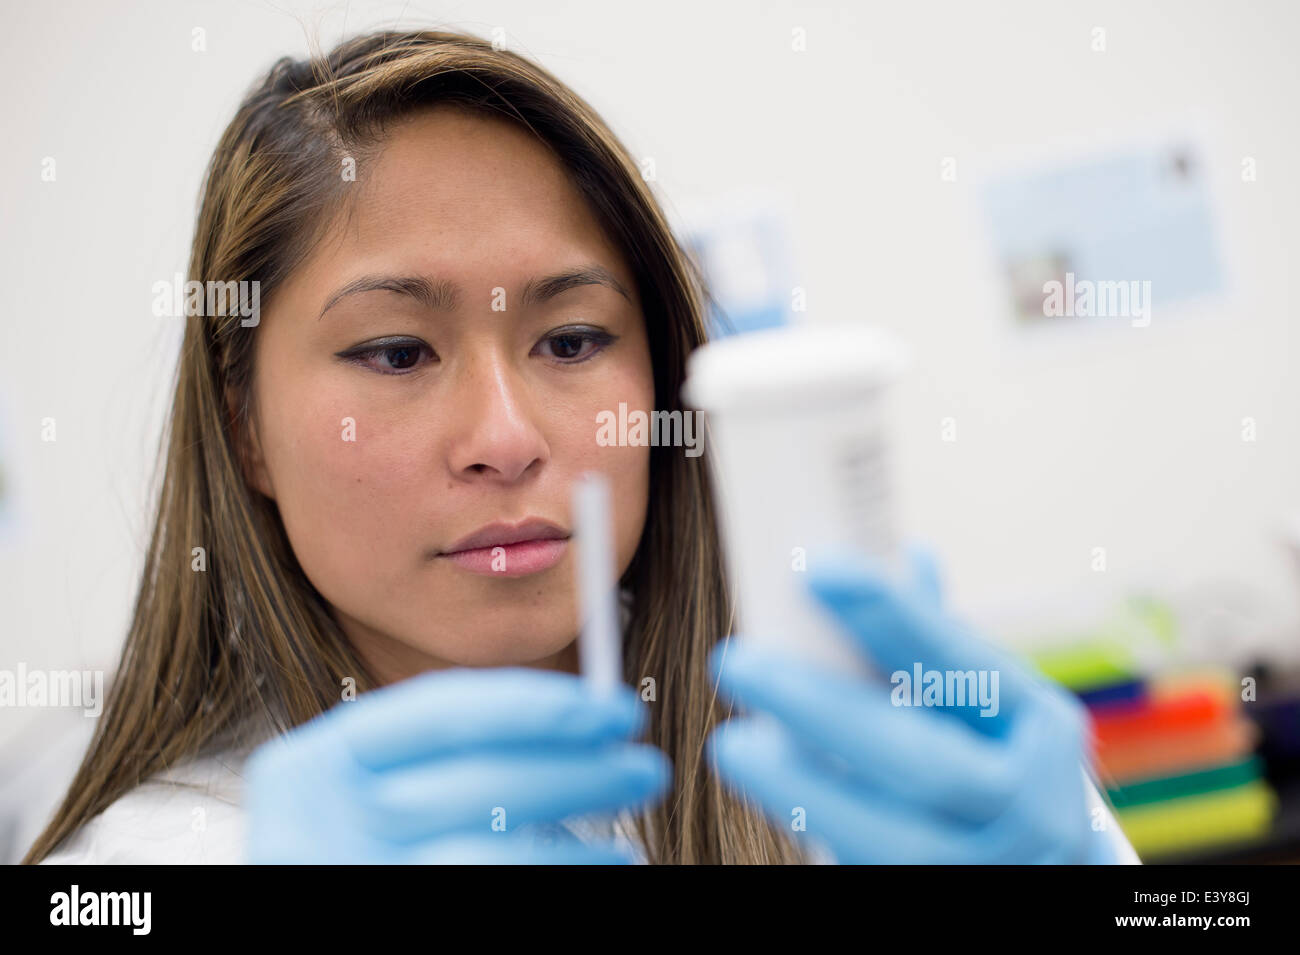 Science student holding litmus paper - Stock Image